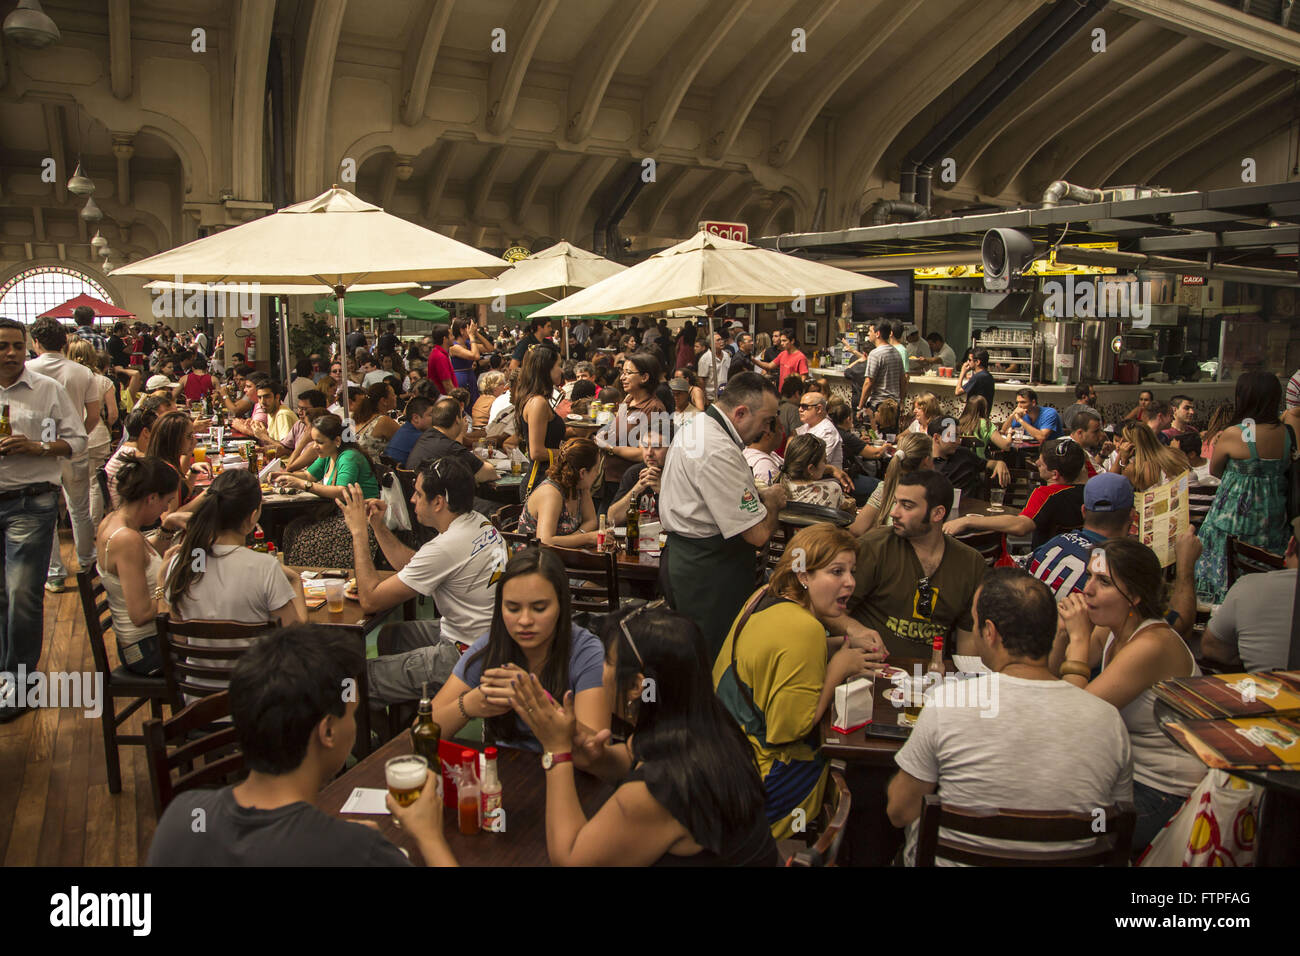 Food court of the Municipal Market of Sao Paulo - a tourist attraction opened in 193 - Stock Image